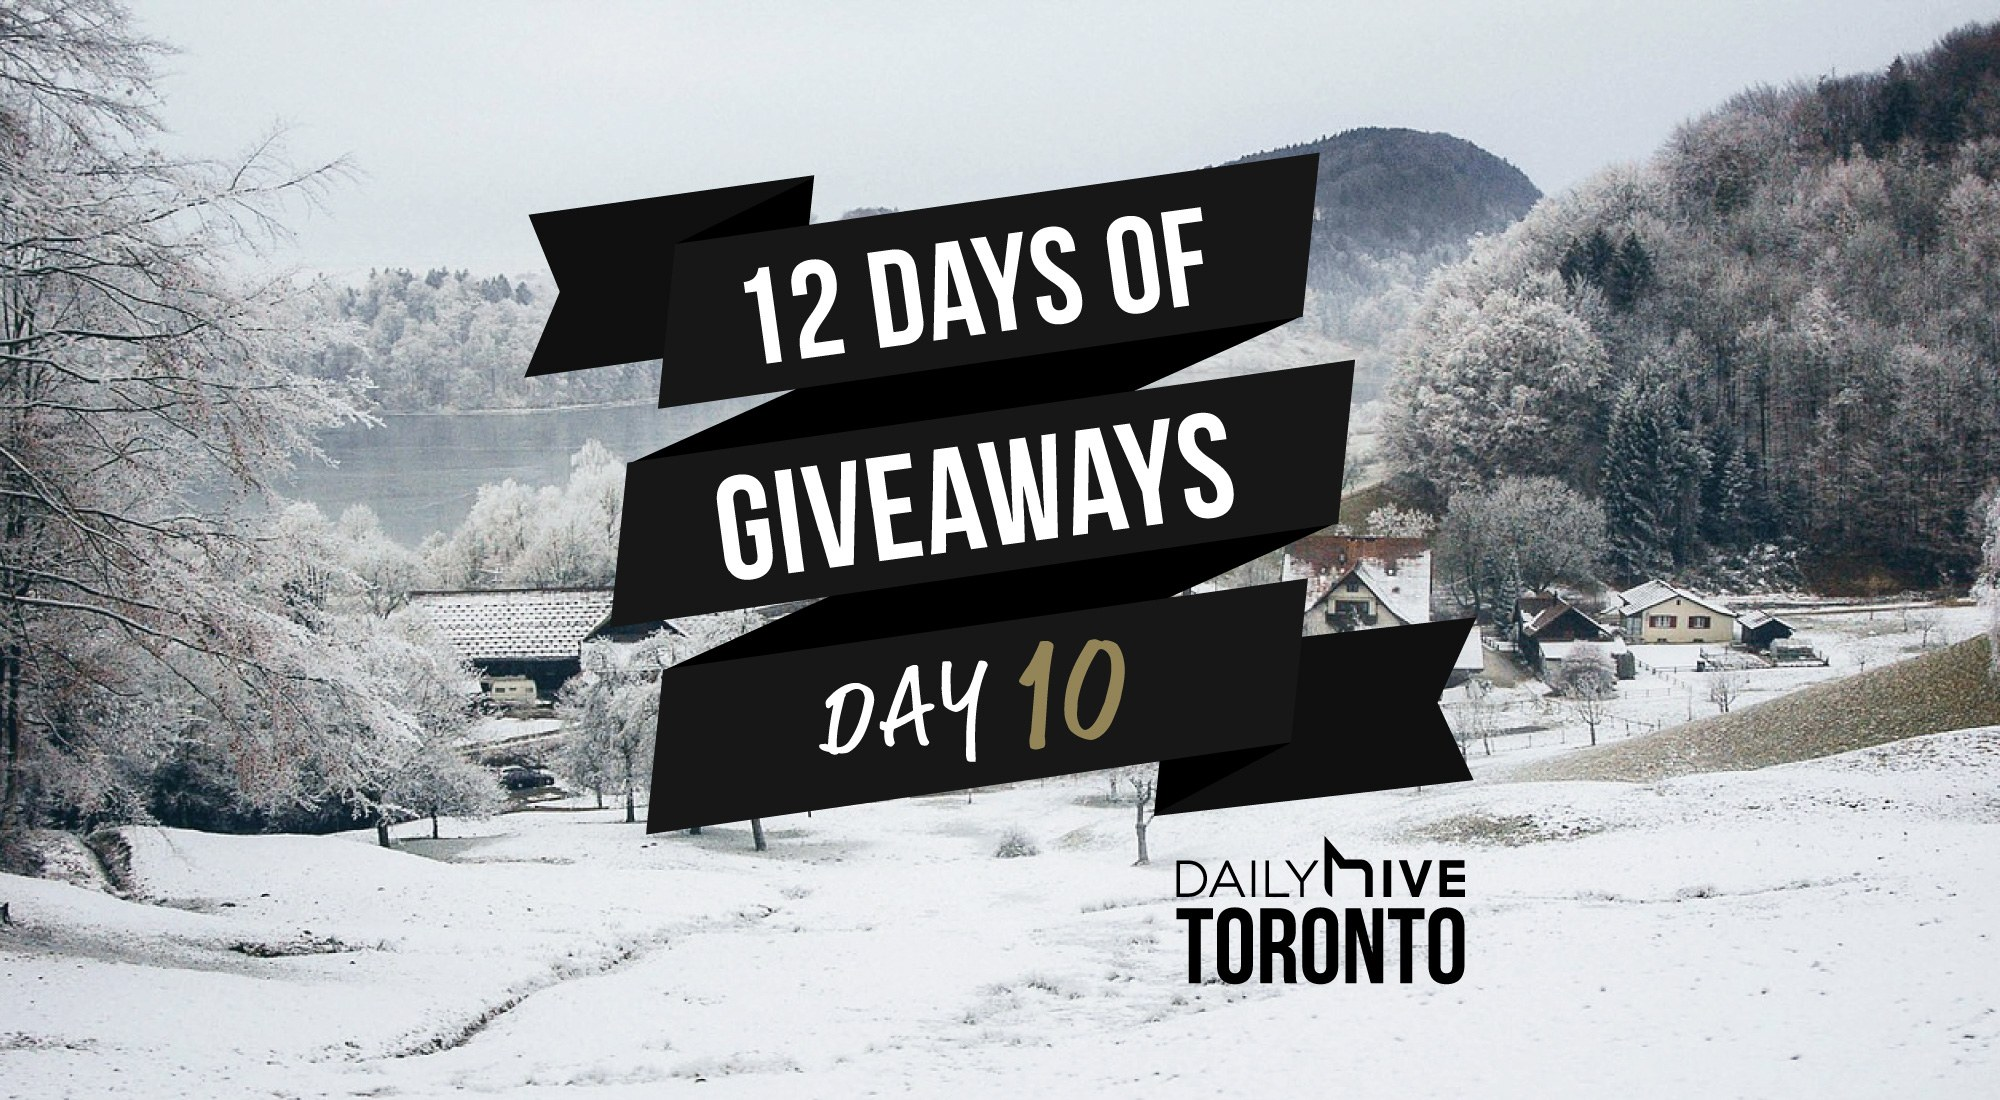 12 days of giveaways toronto 10